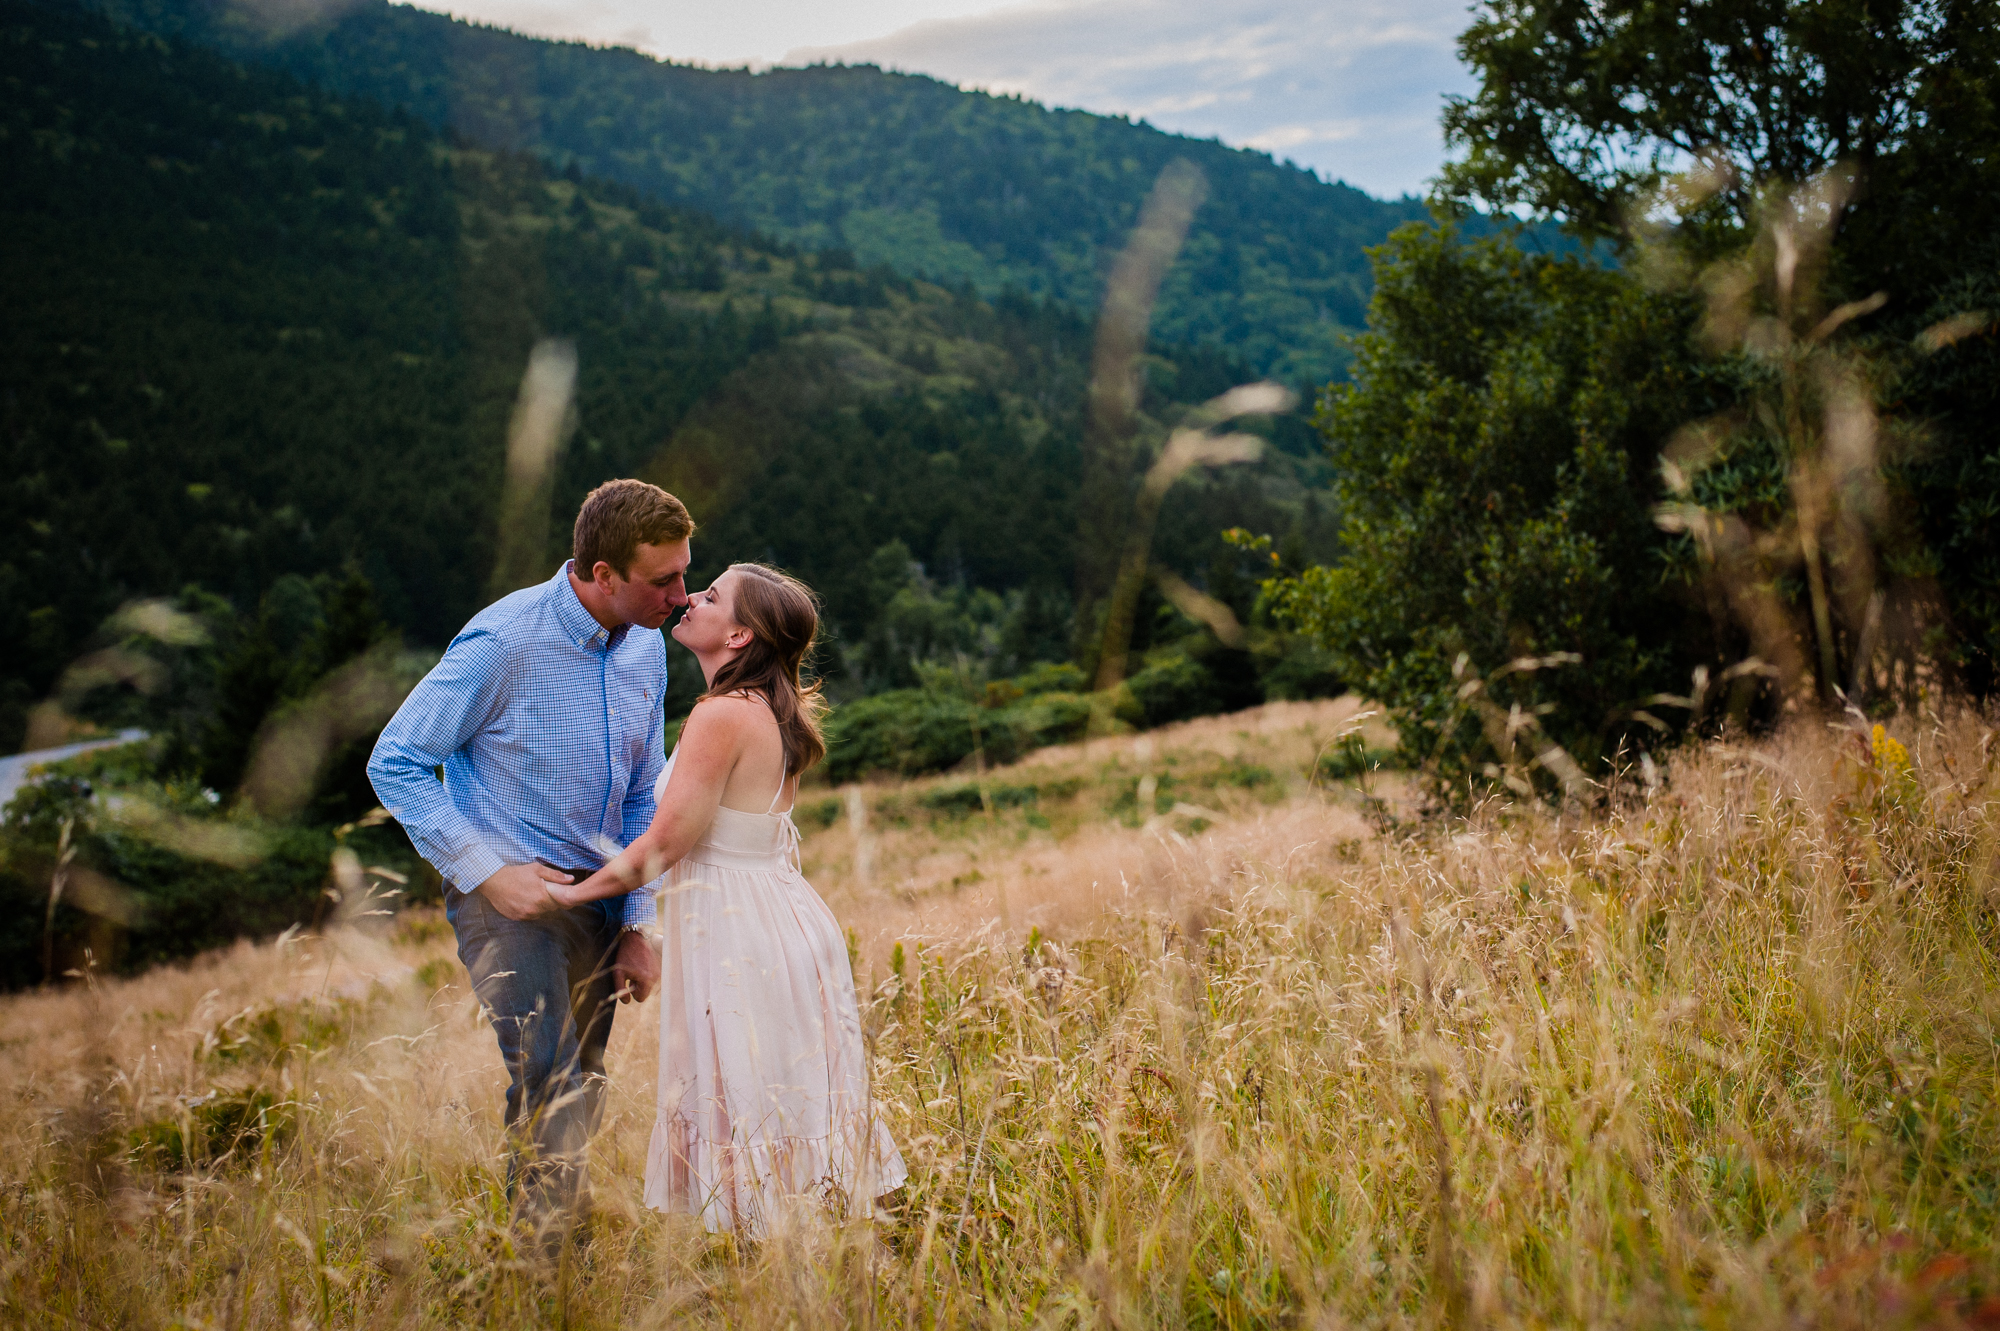 engagement session in a field near carvers gap